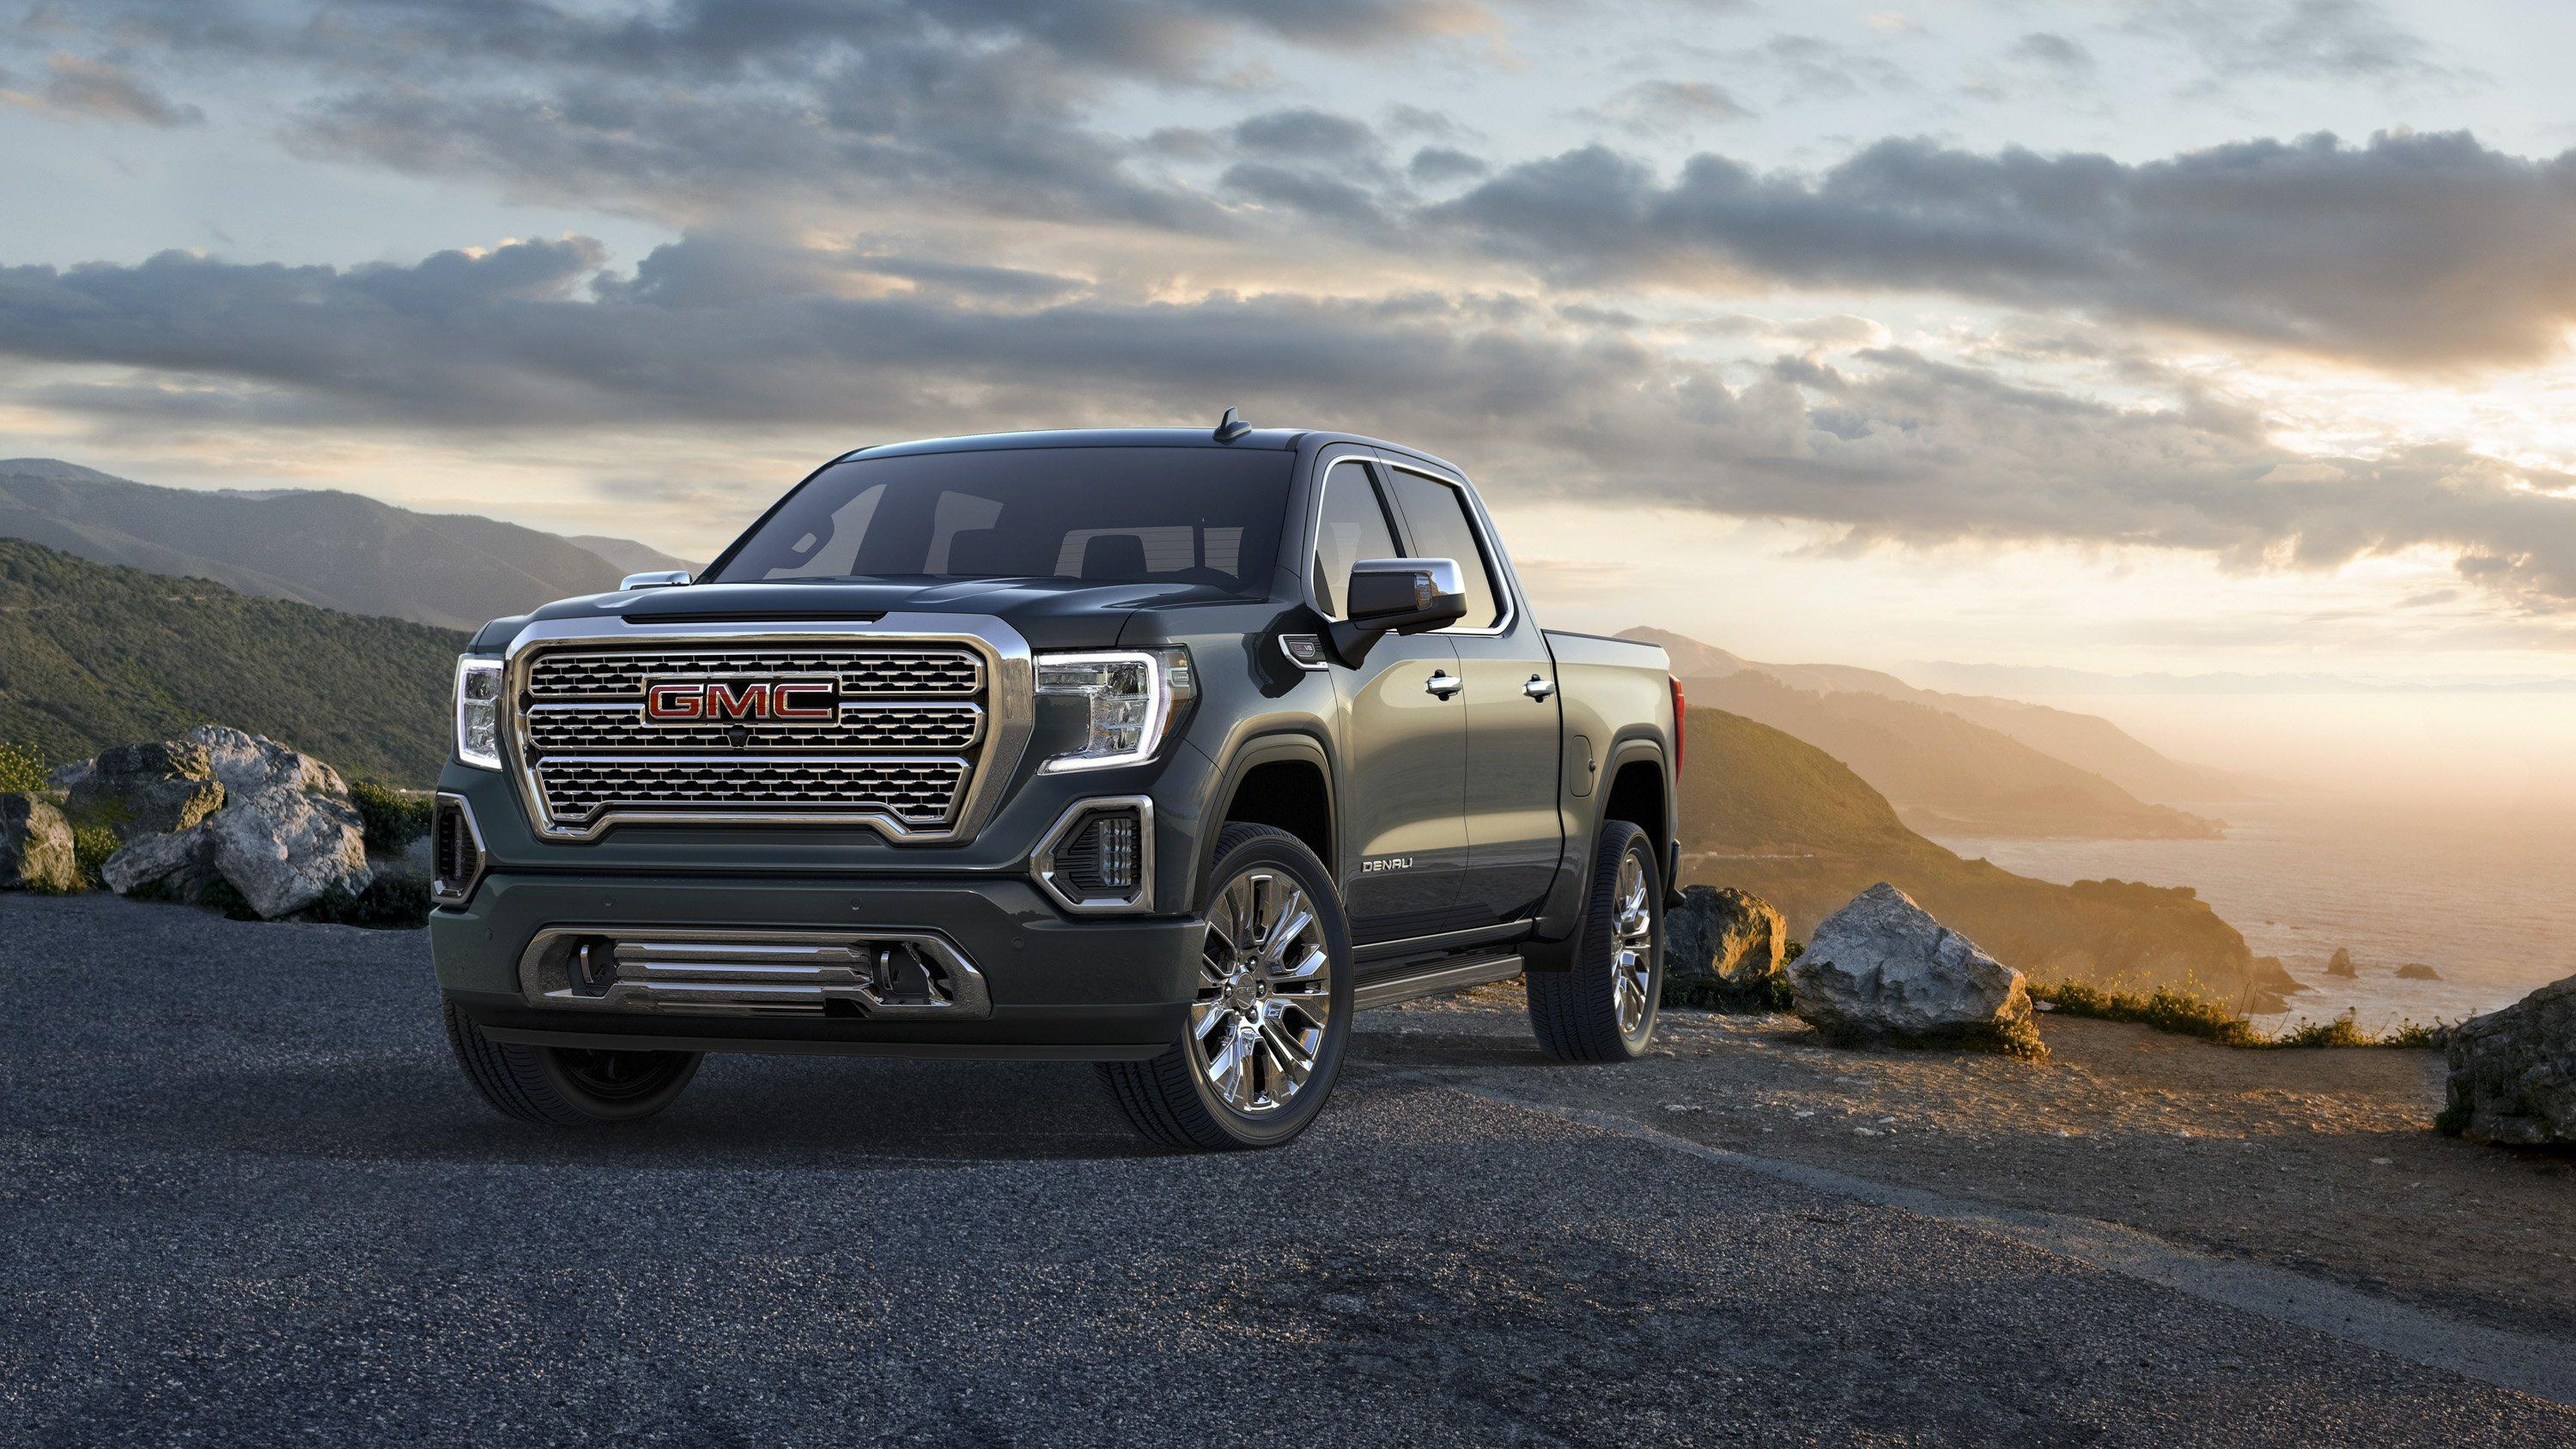 2019 GMC Sierra Pictures, Photos, Wallpapers. | Top Speed